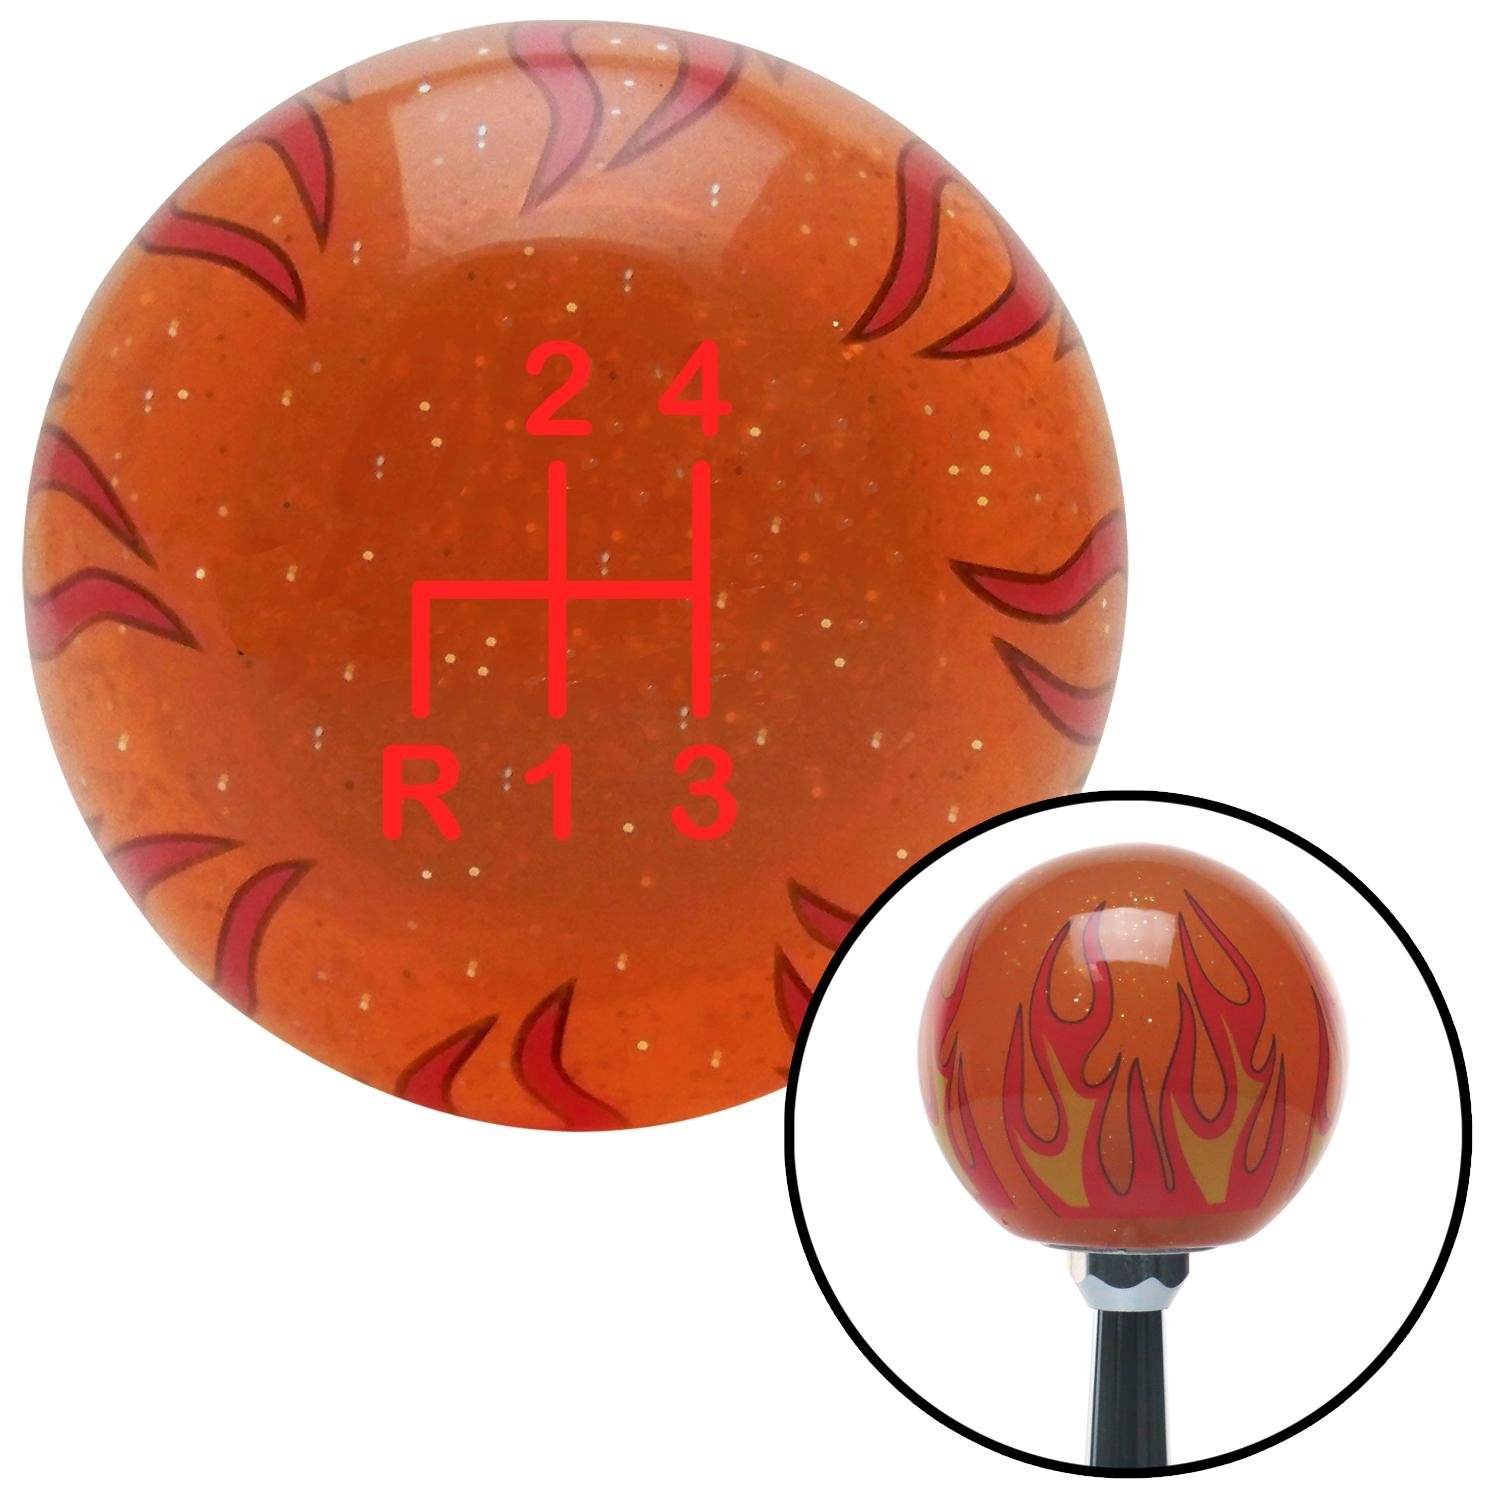 Red Shift Pattern 2n American Shifter 259390 Orange Flame Metal Flake Shift Knob with M16 x 1.5 Insert